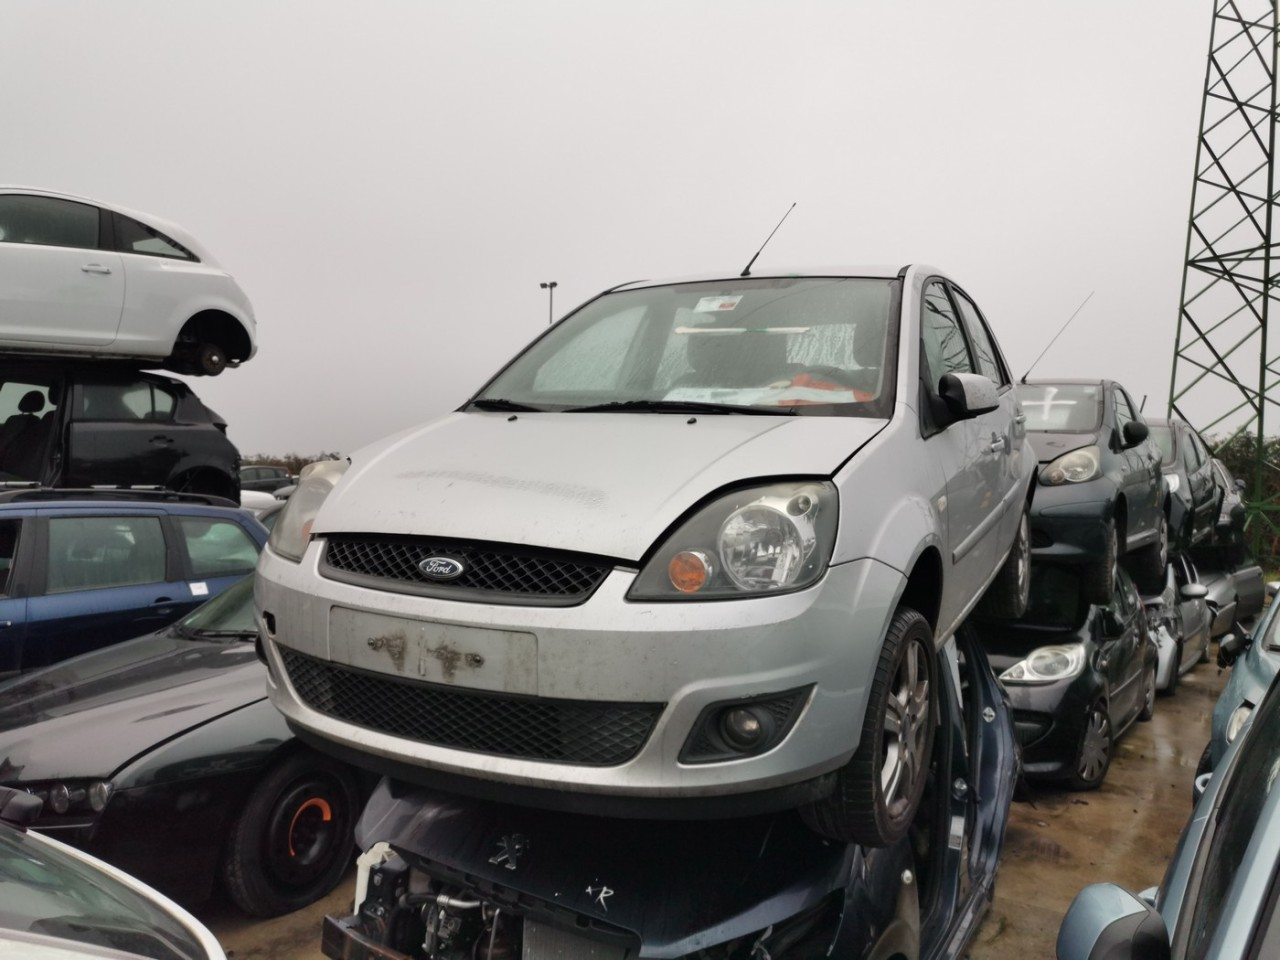 Ford Fiesta facelift 1.4tdci tip F6JB  (piese auto second hand)